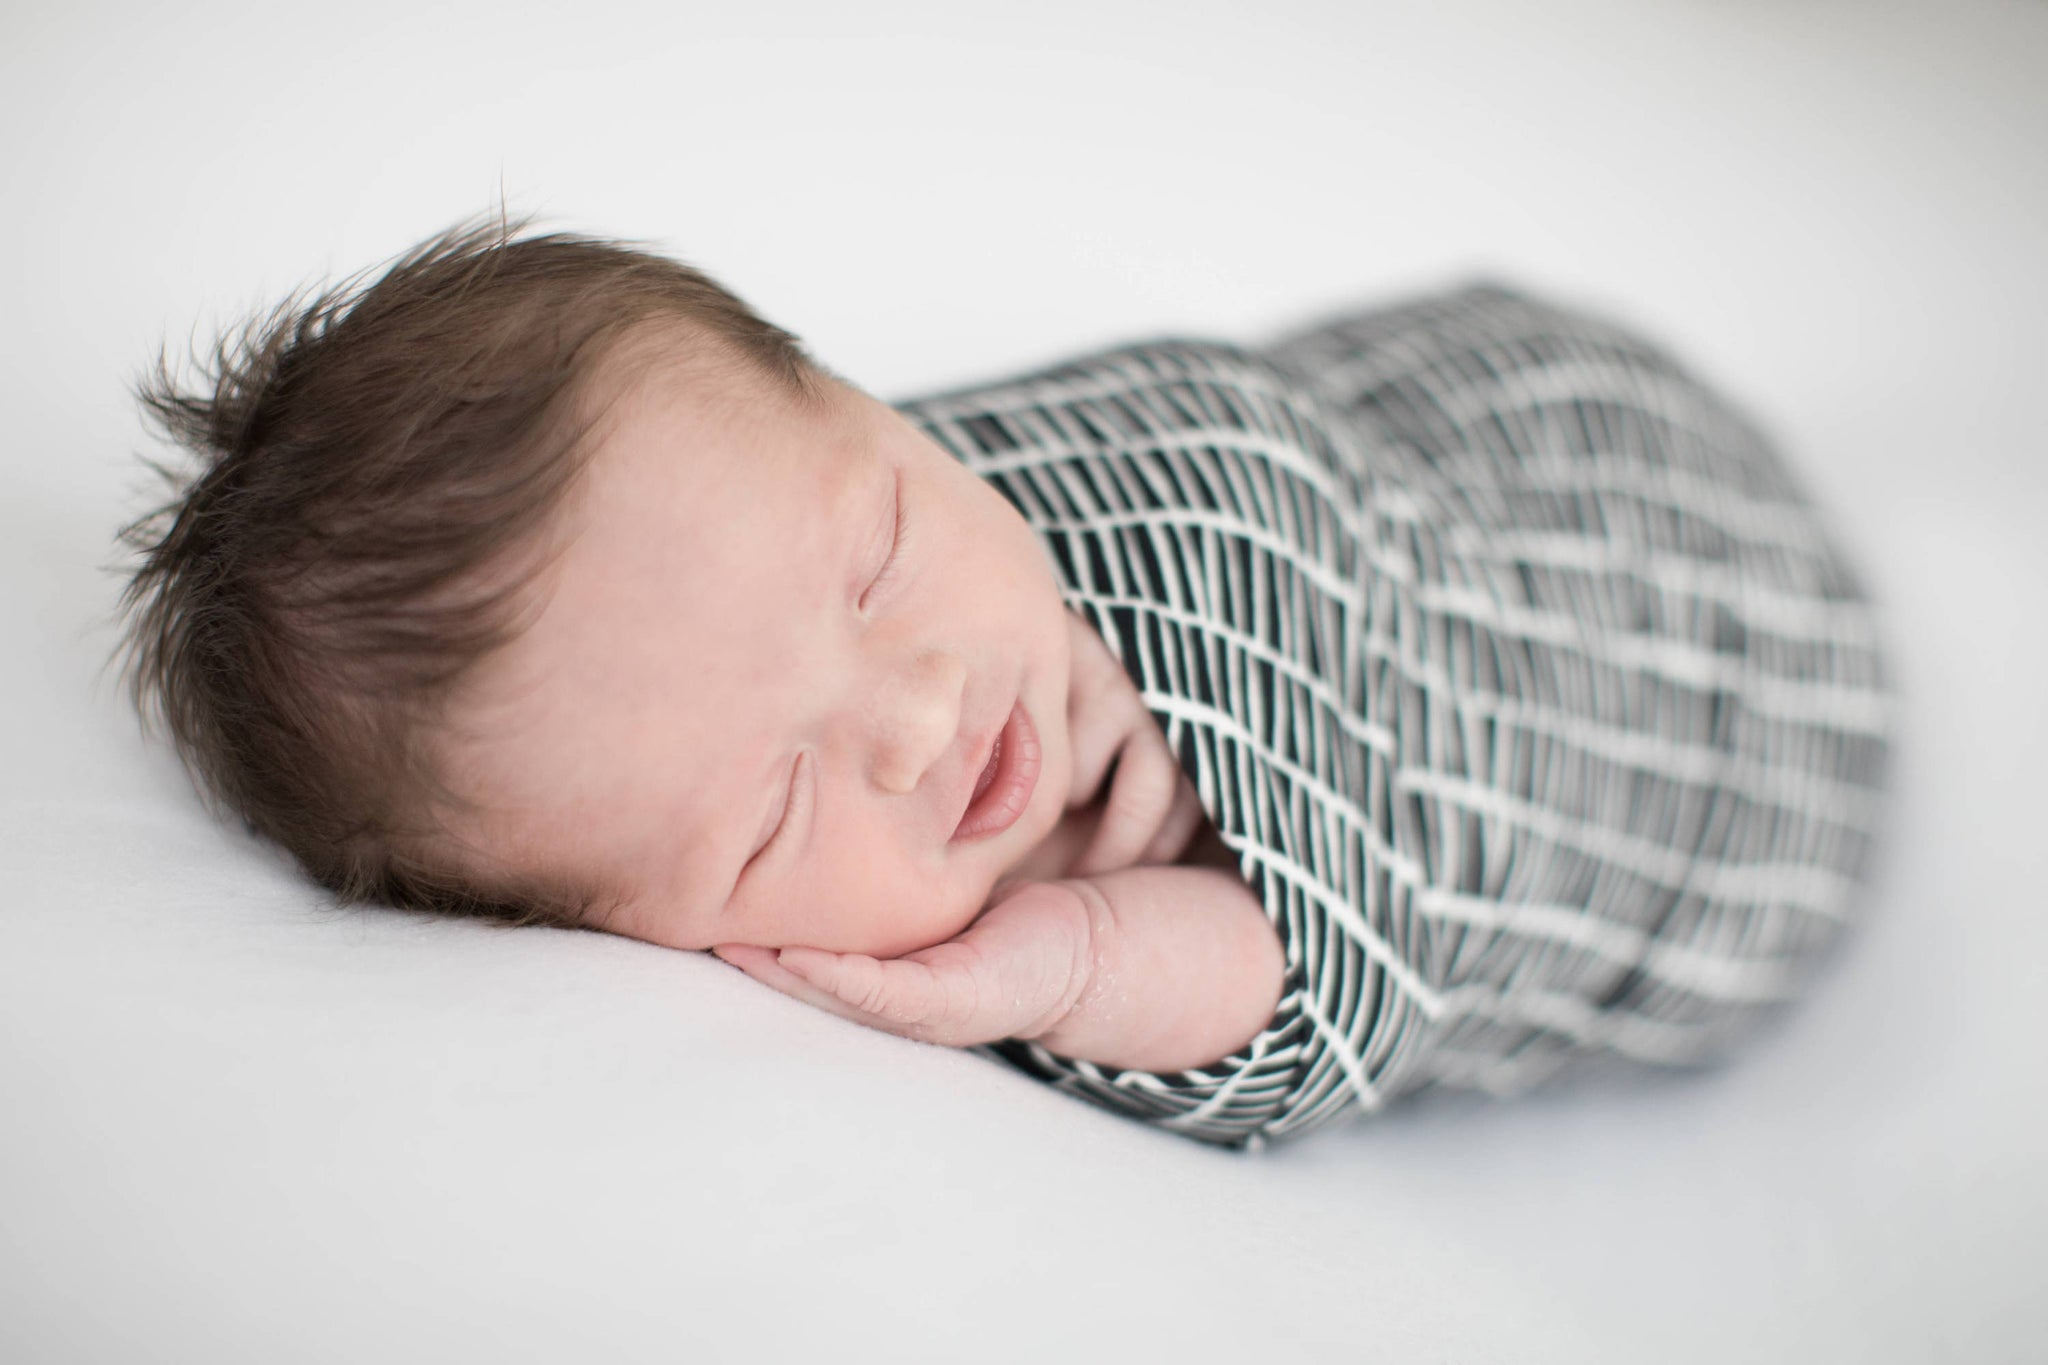 newborn-baby-photography-sweet-sleeping-infant-in-swaddle-set